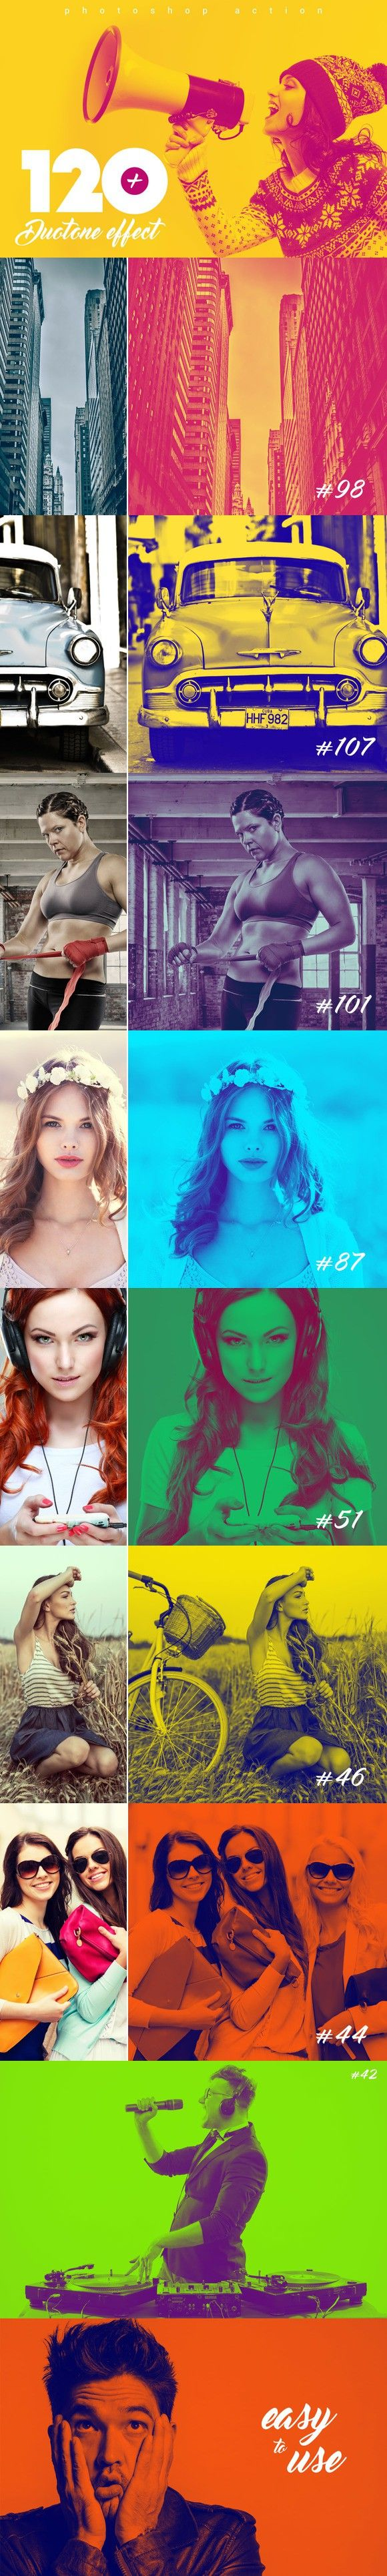 120+ Duotone Effects V.1. Photo Effect Photoshop Actions. $15.00